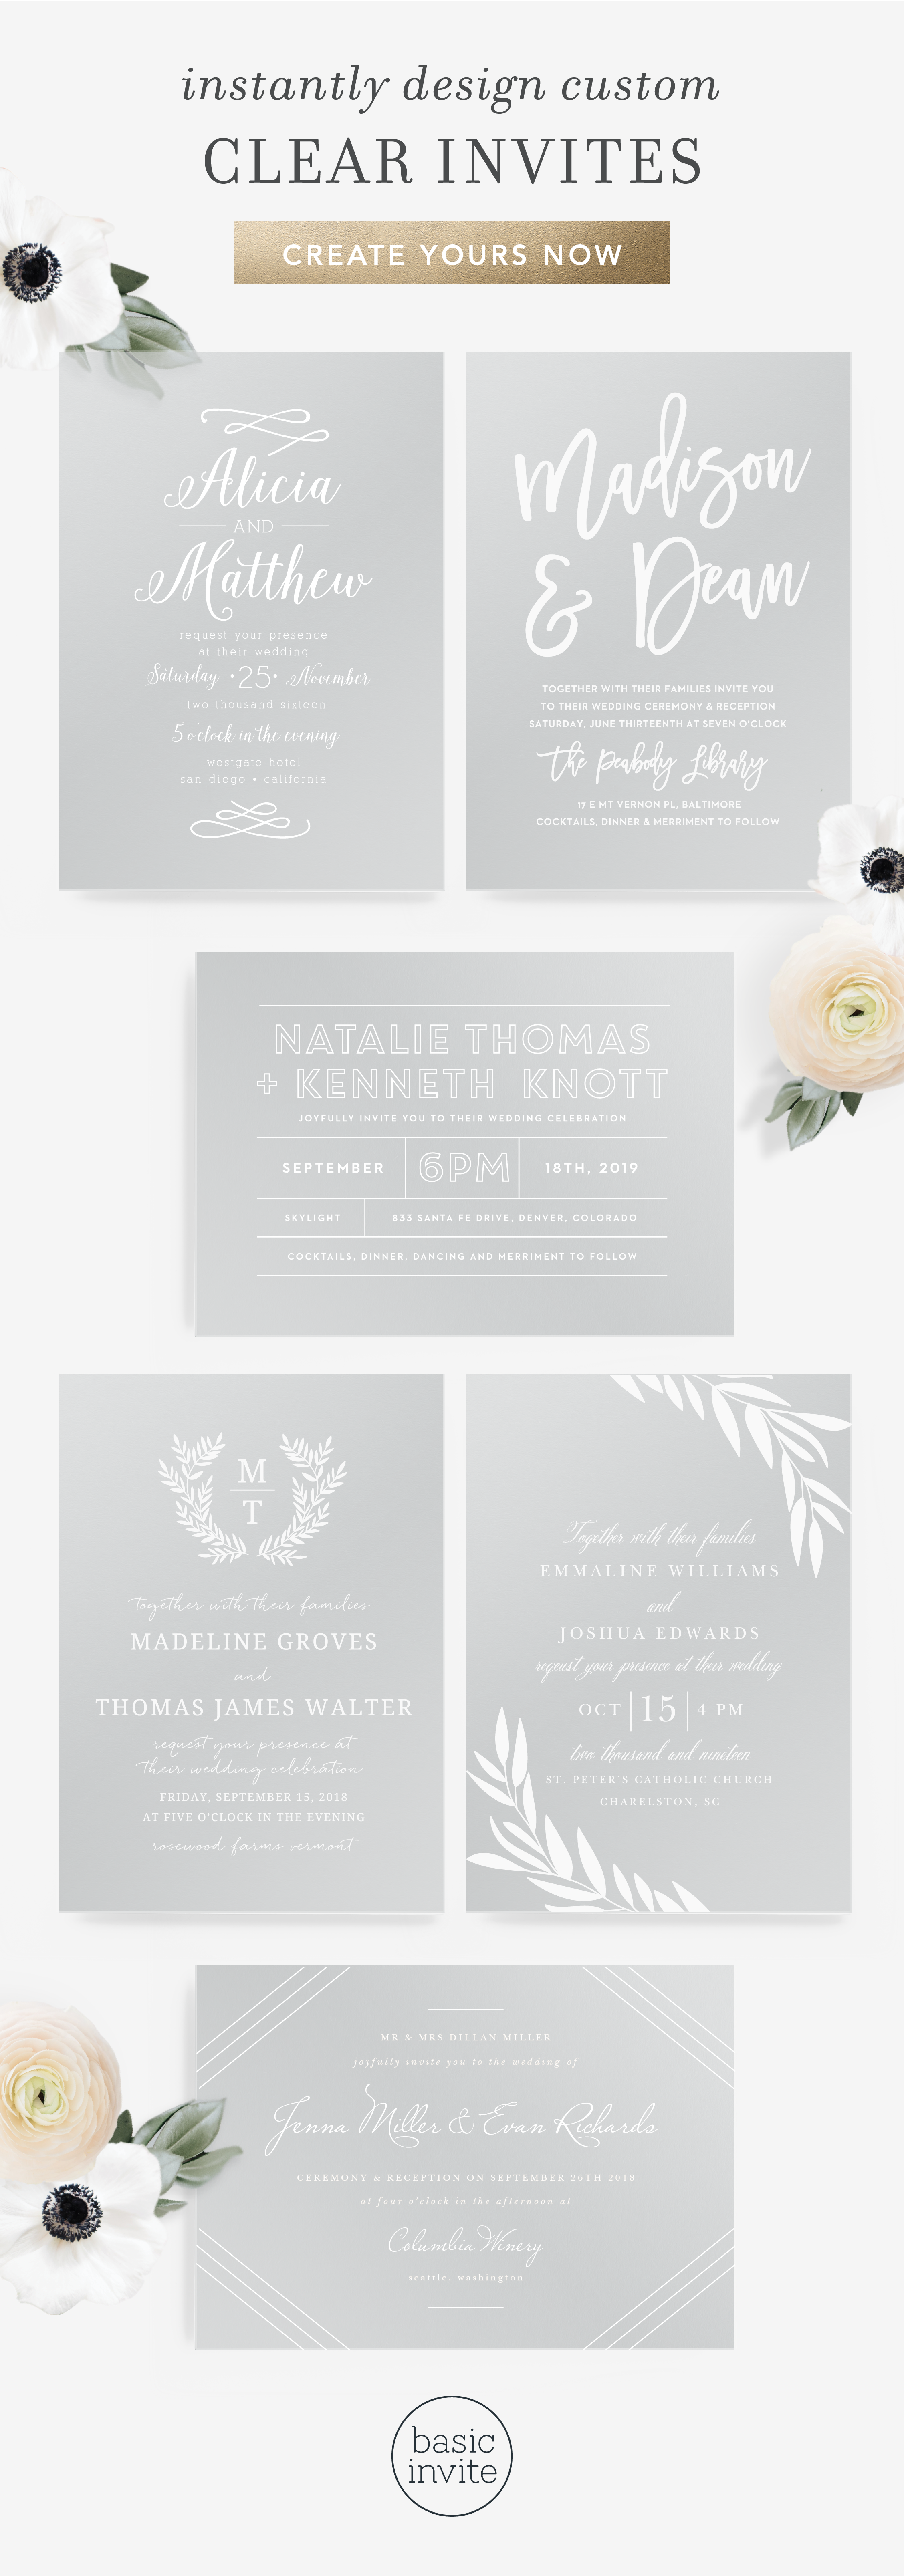 New Clear Wedding Invitations Free Guest Address Envelope Printing With Every Order Clear Wedding Invitations Wedding Invitations Wedding Reception Locations